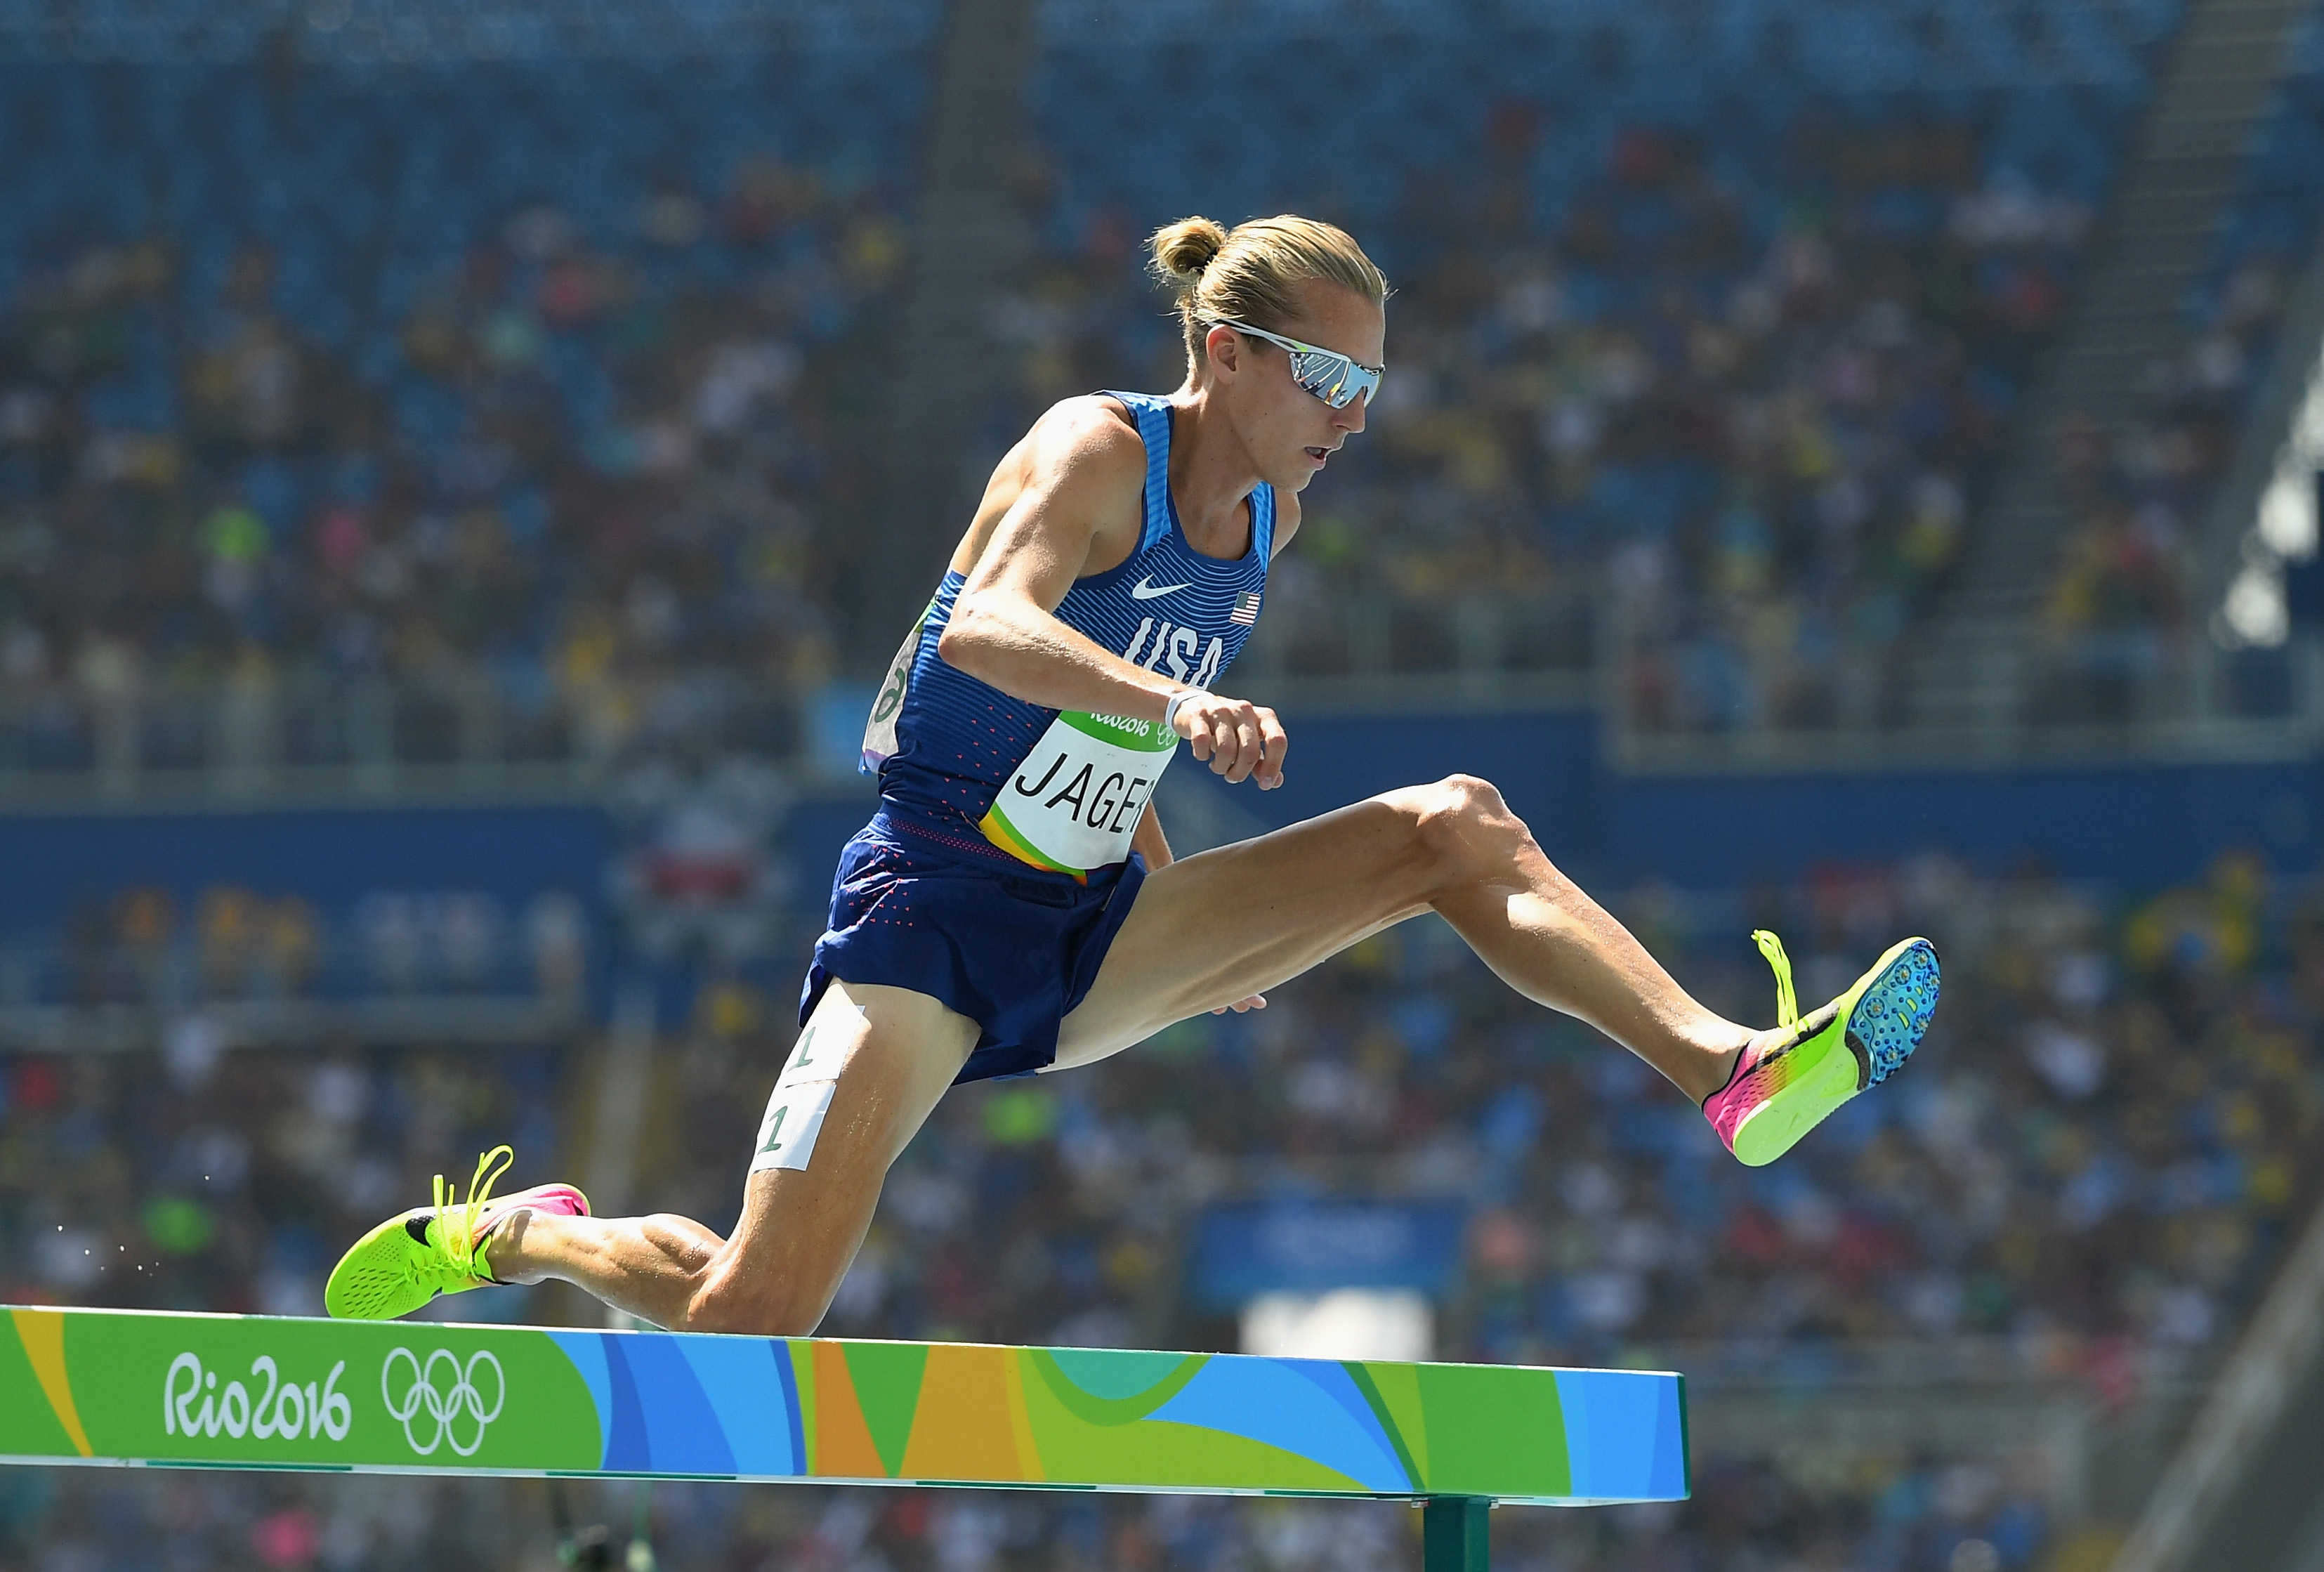 RIO DE JANEIRO, BRAZIL - AUGUST 15: Evan Jager of the United States competes during the Men's 3000m Steeplechase Round 1 on Day 10 of the Rio 2016 Olympic Games at the Olympic Stadium on August 15, 2016 in Rio de Janeiro, Brazil.  (Photo by Quinn Rooney/Getty Images)